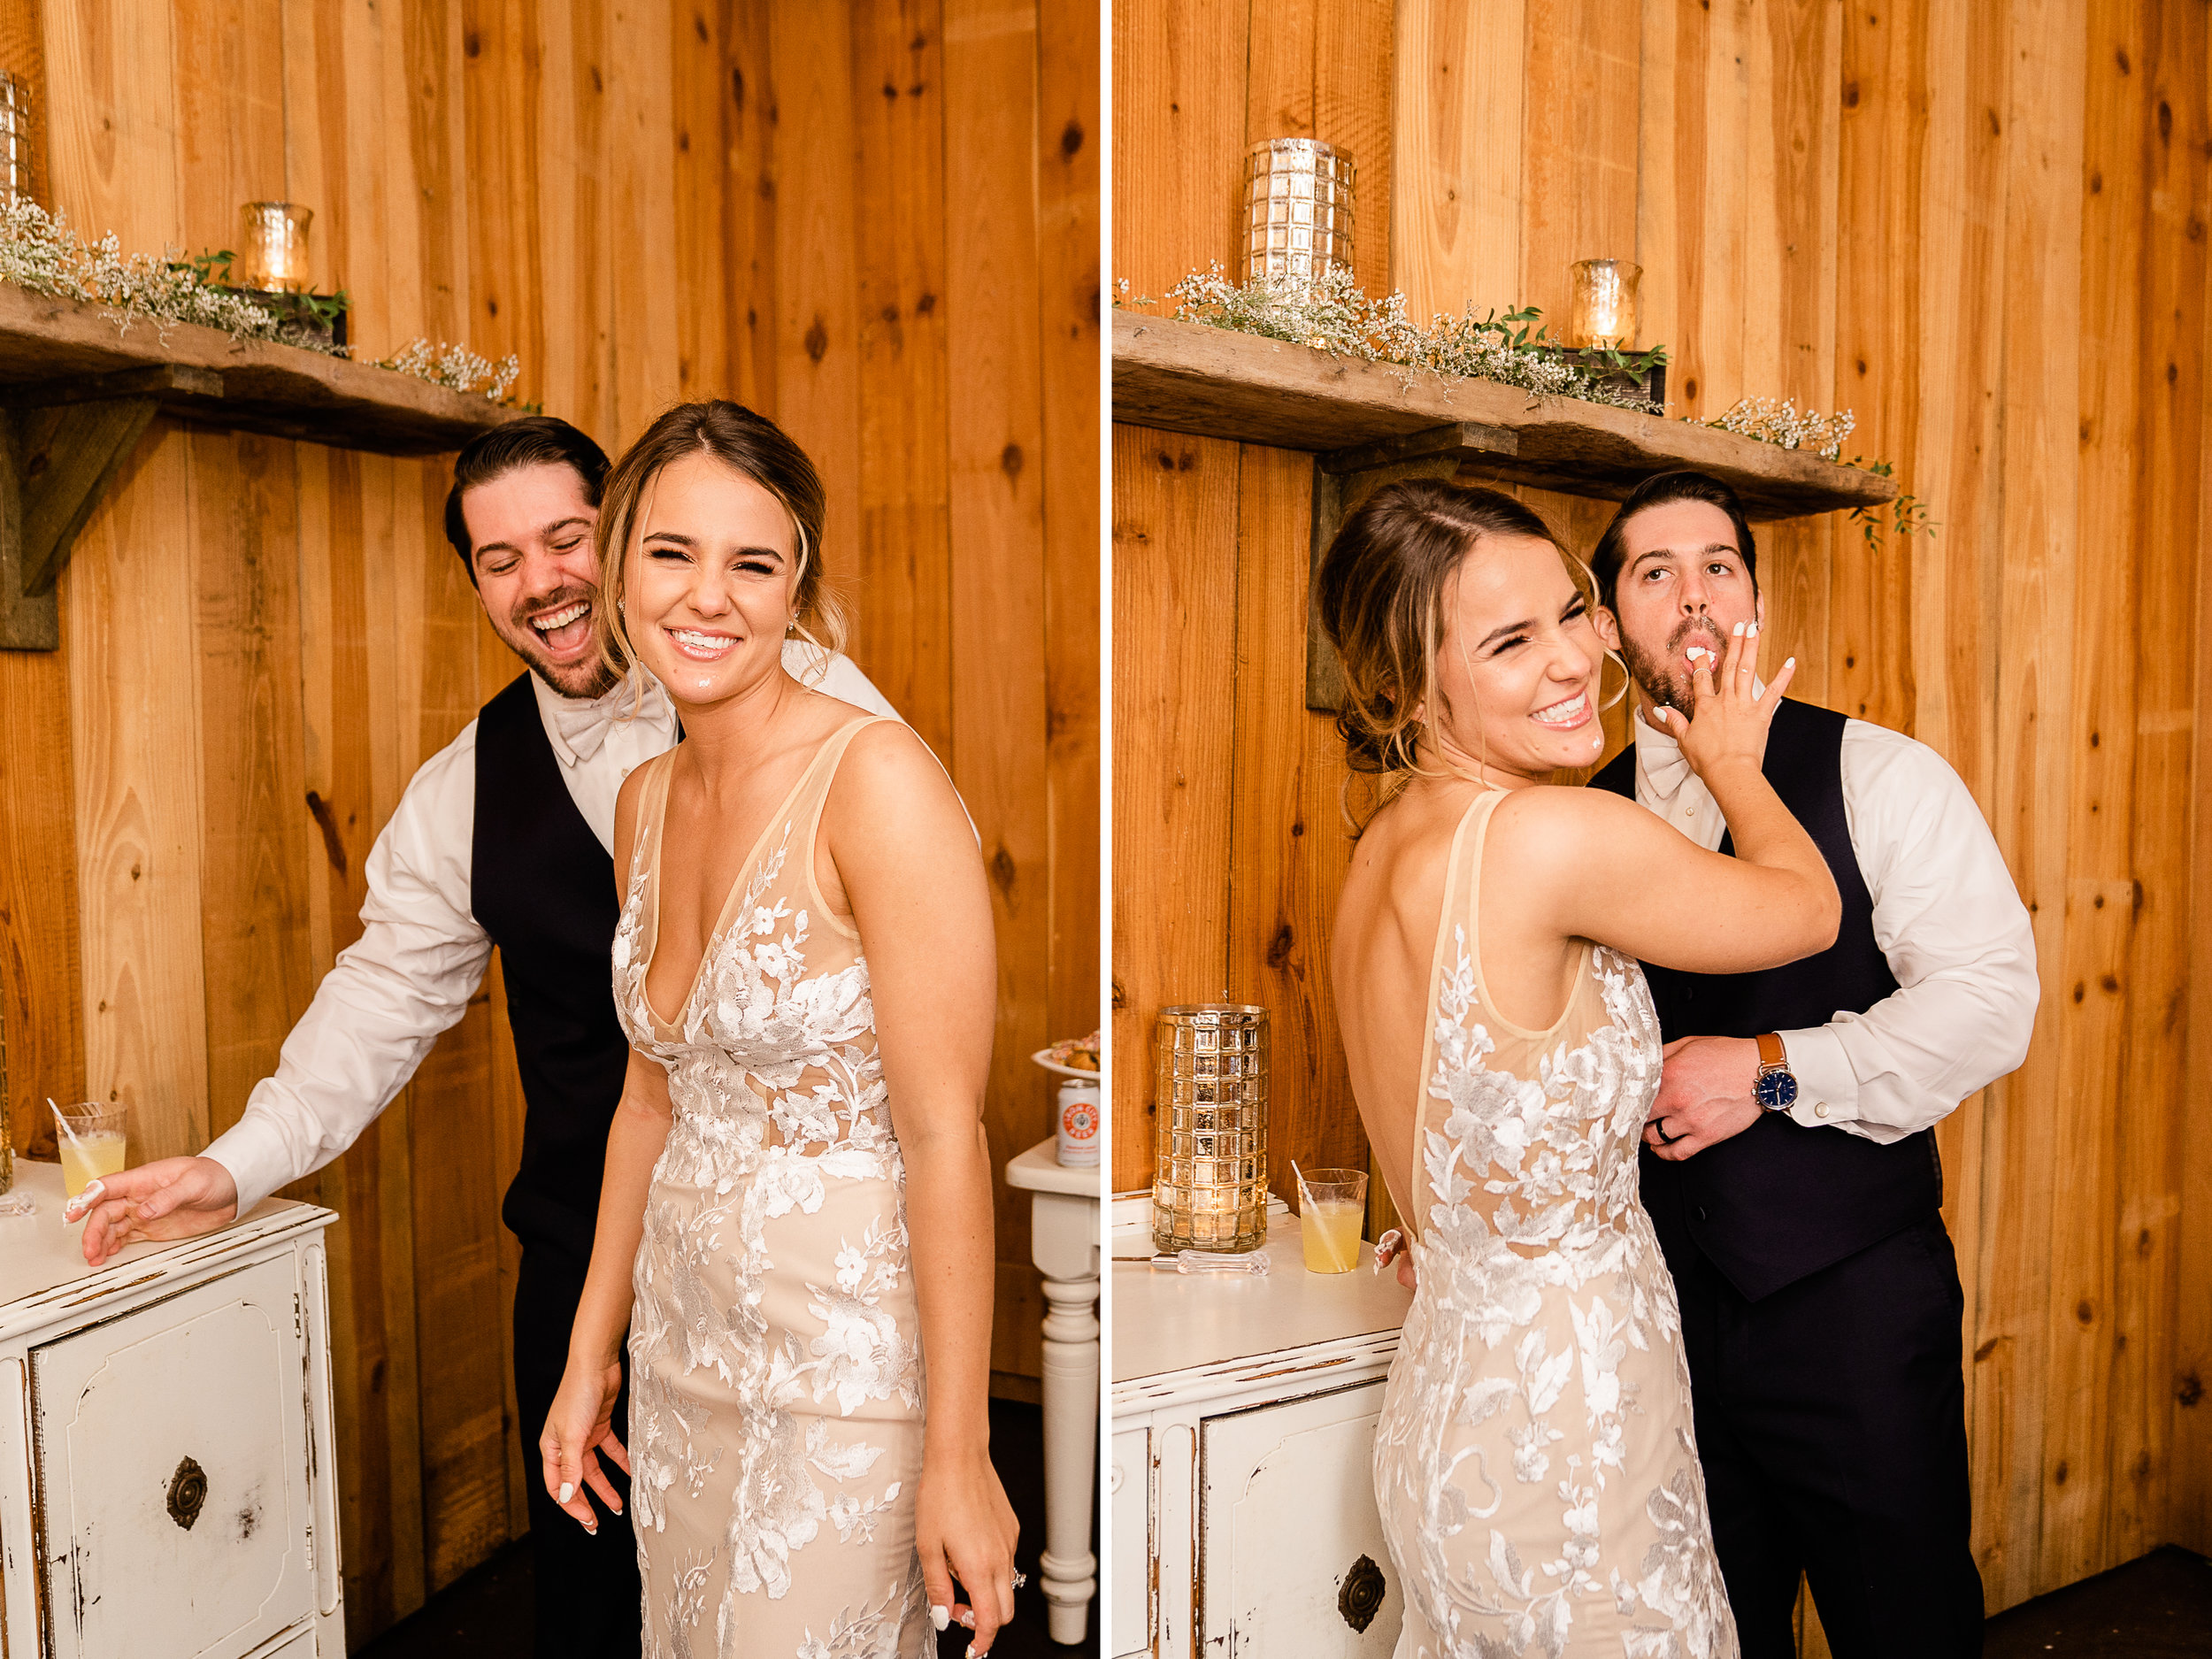 Delamater House Wedding-60.jpg